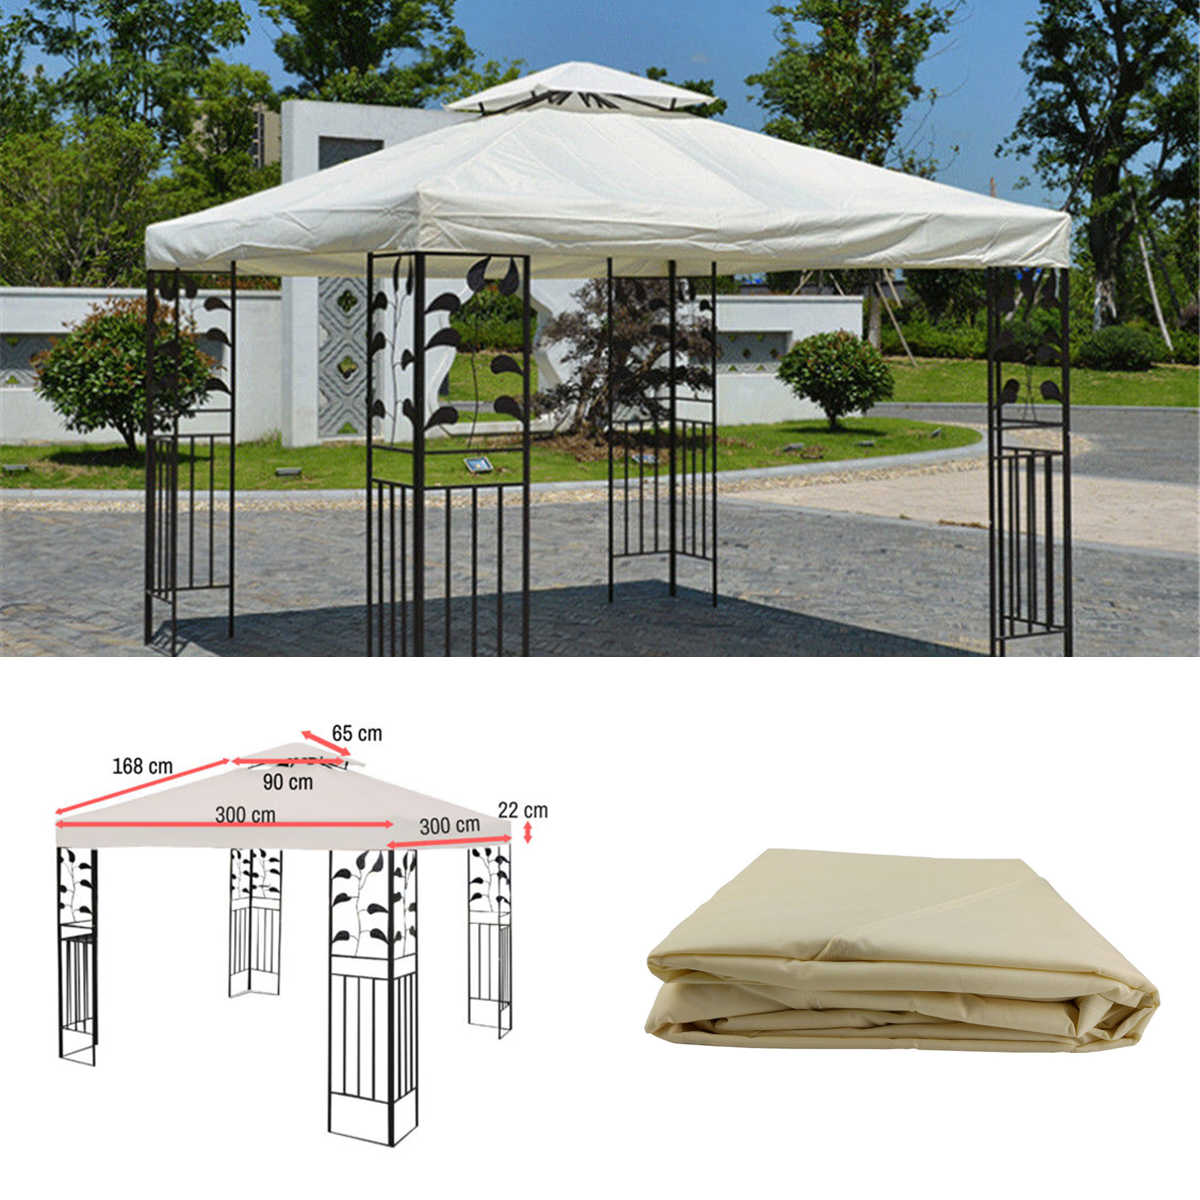 3x3m 300d Canvas Camping Hiking Sun Shelter Outdoor Tent Canopy Top Roof Cover Patio Sun Shade Cloth Shade Shelter Replace Part Aliexpress